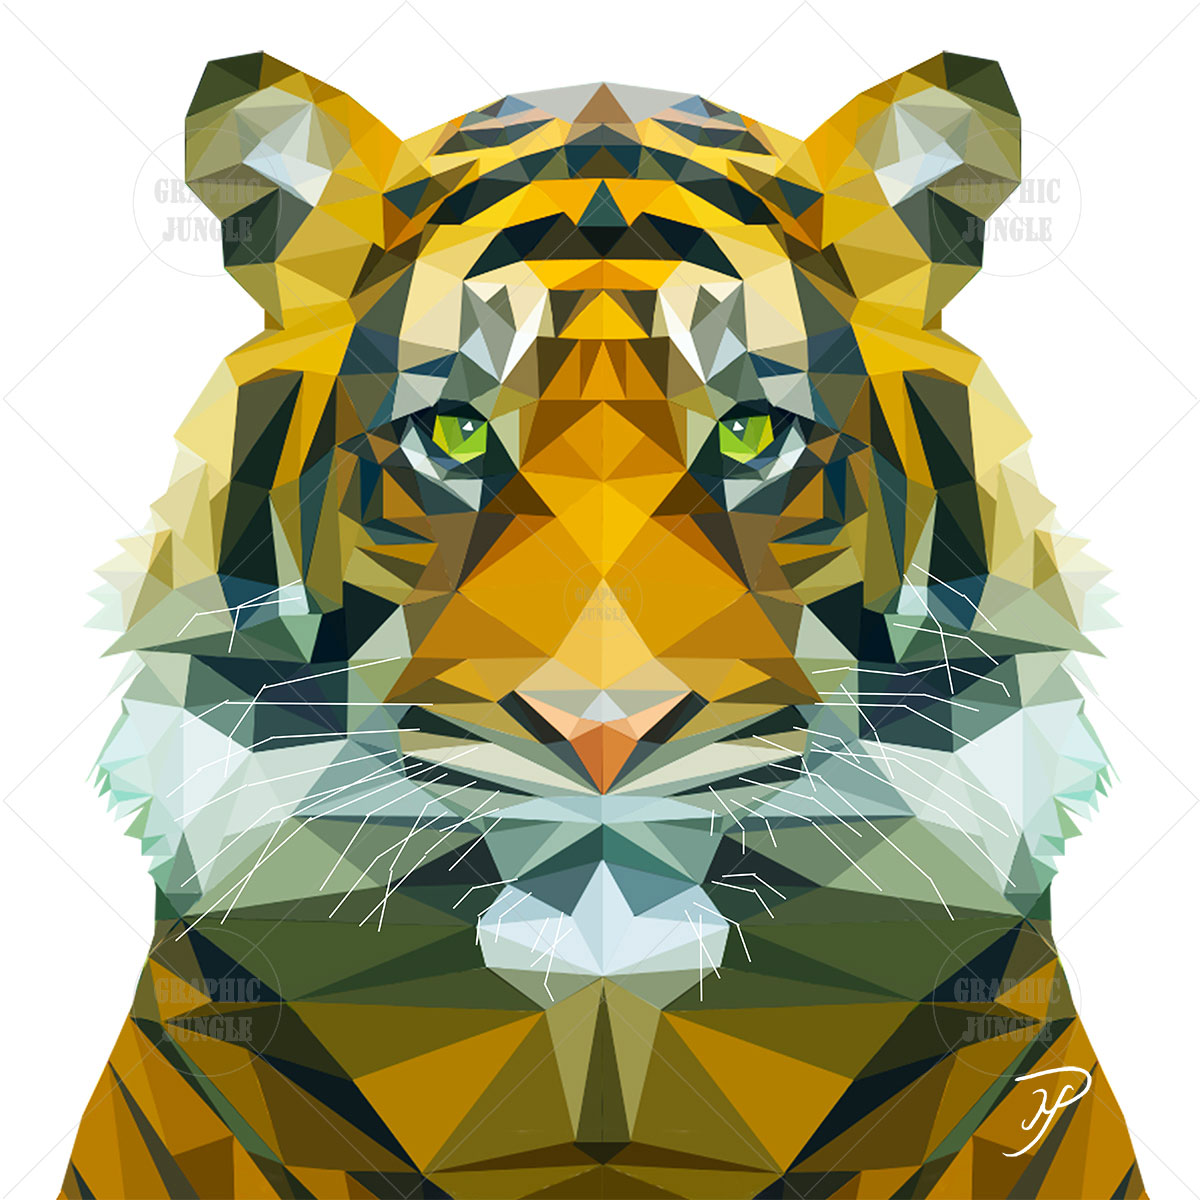 01 TIGER SQUARE WHITE